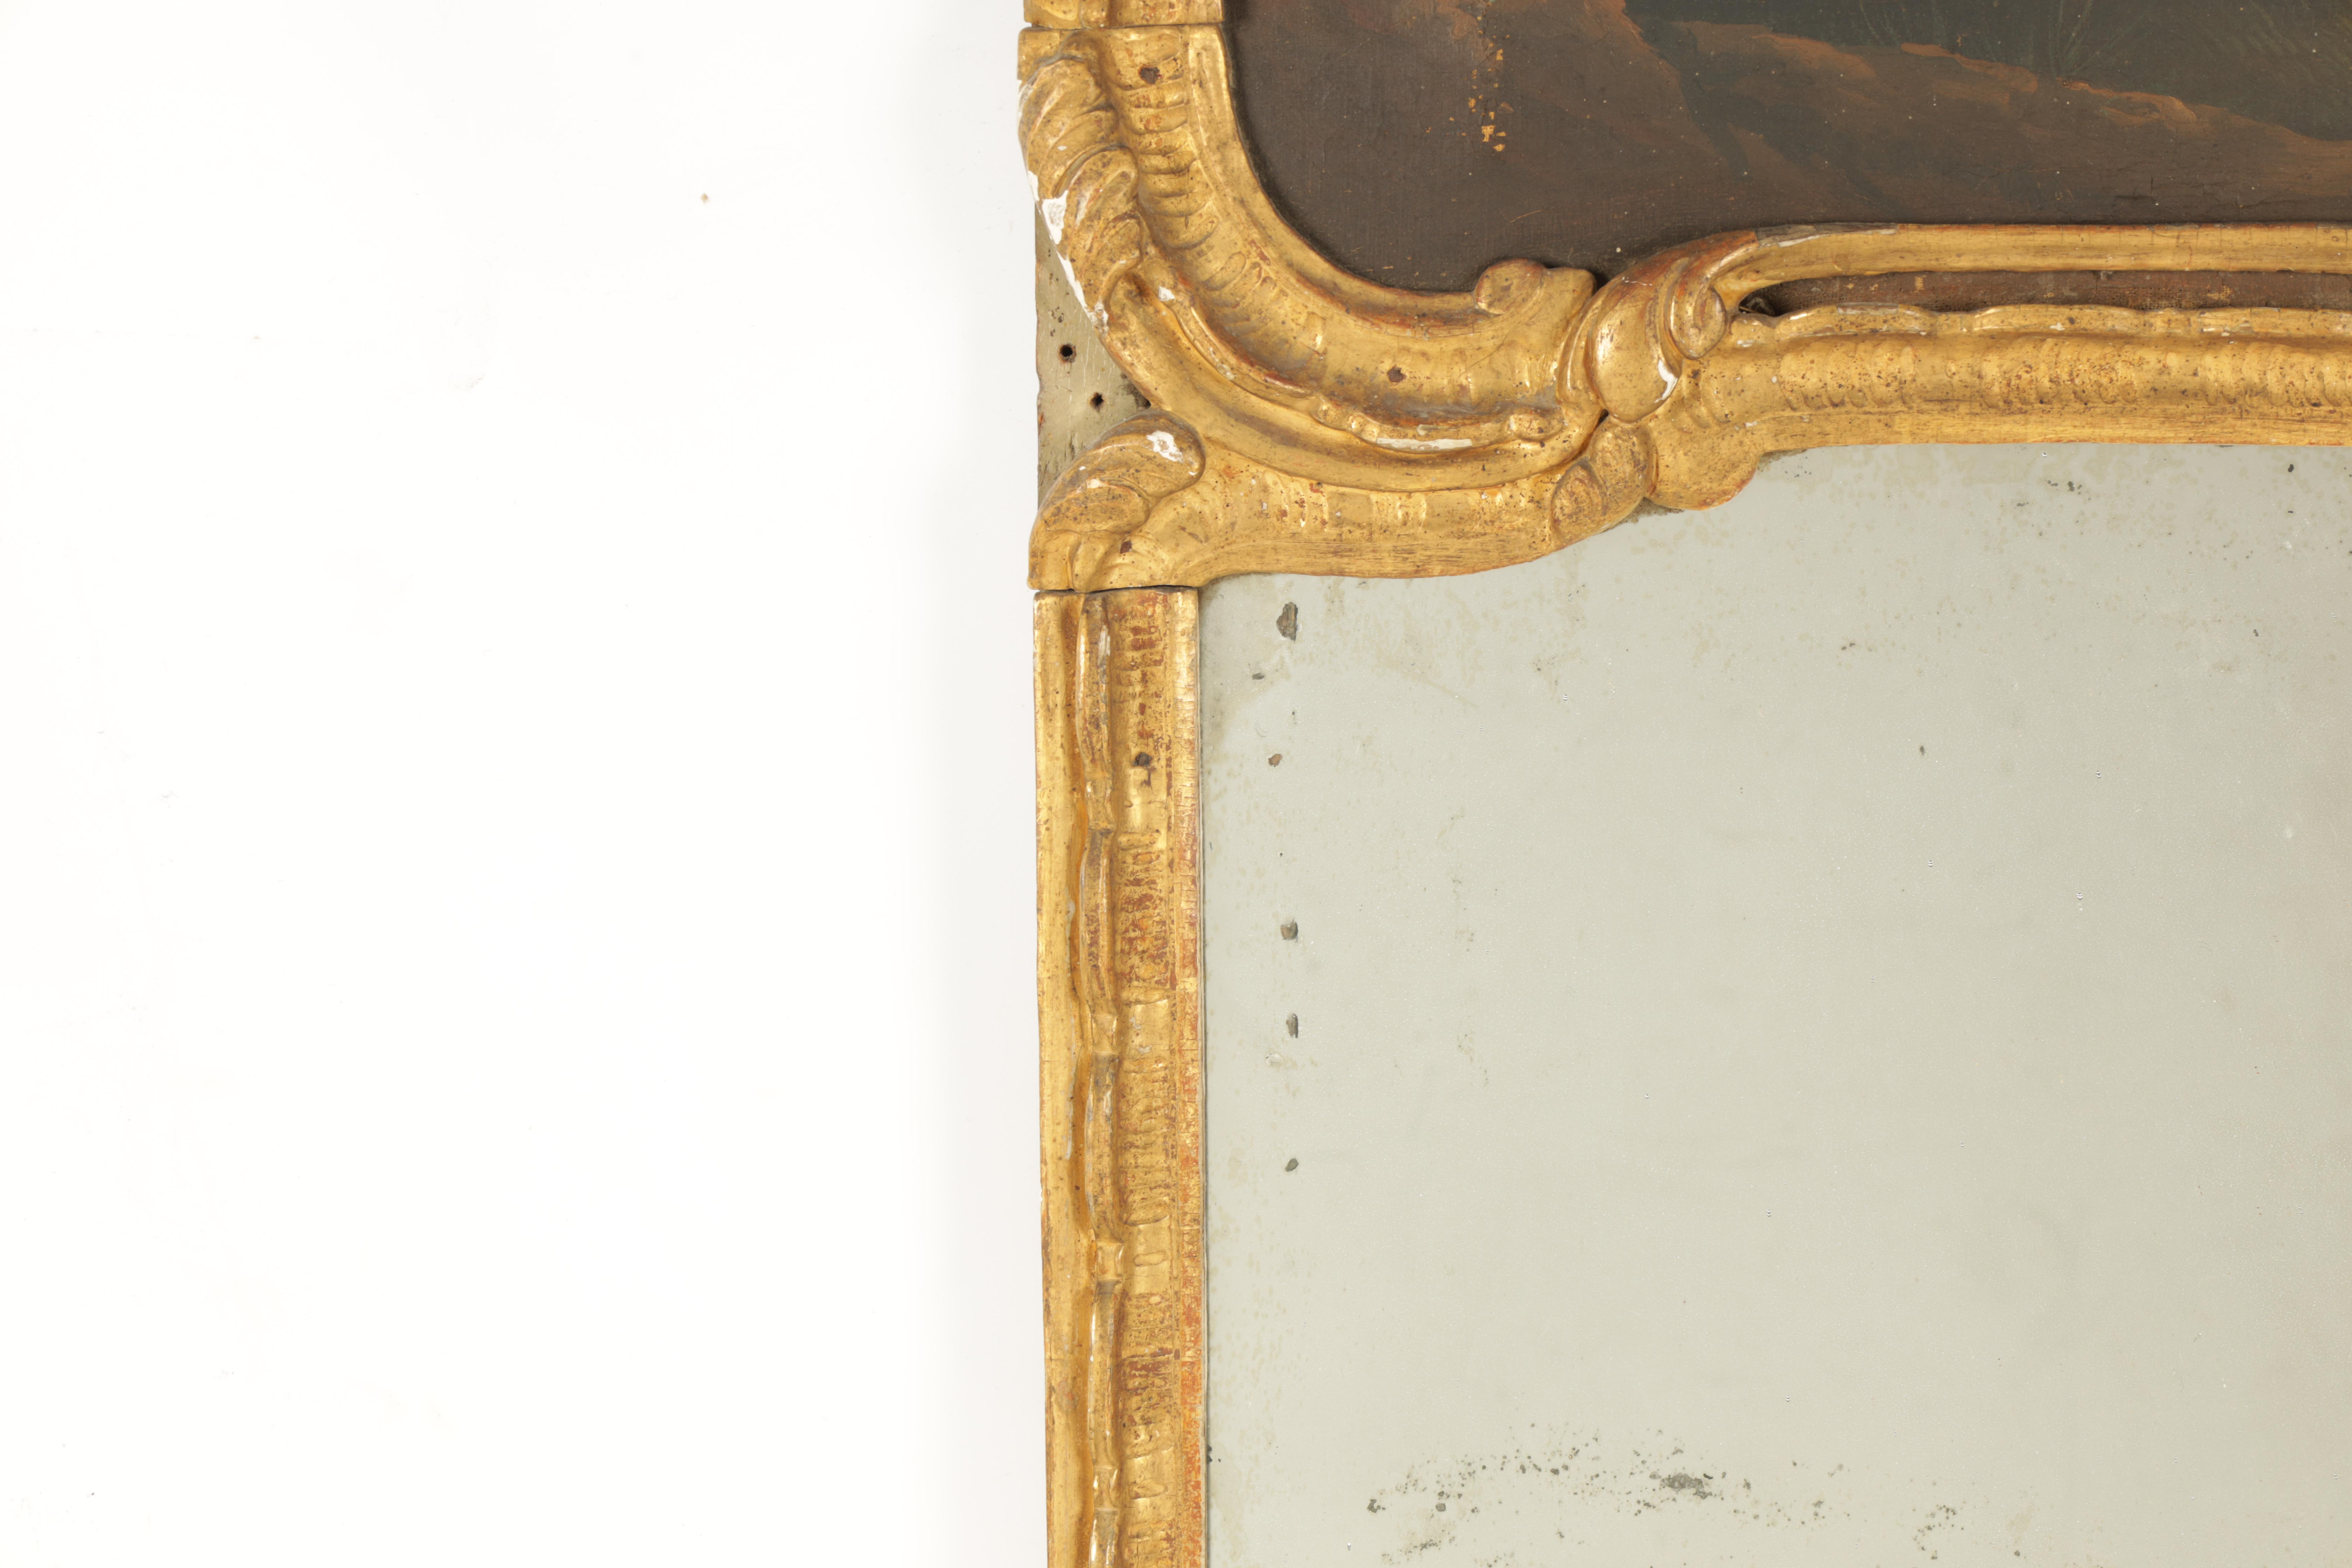 AN EARLY 18TH CENTURY CONTINENTAL GILTWOOD ROCOCO STYLE PIER MIRROR with leaf work carved frame - Image 3 of 5